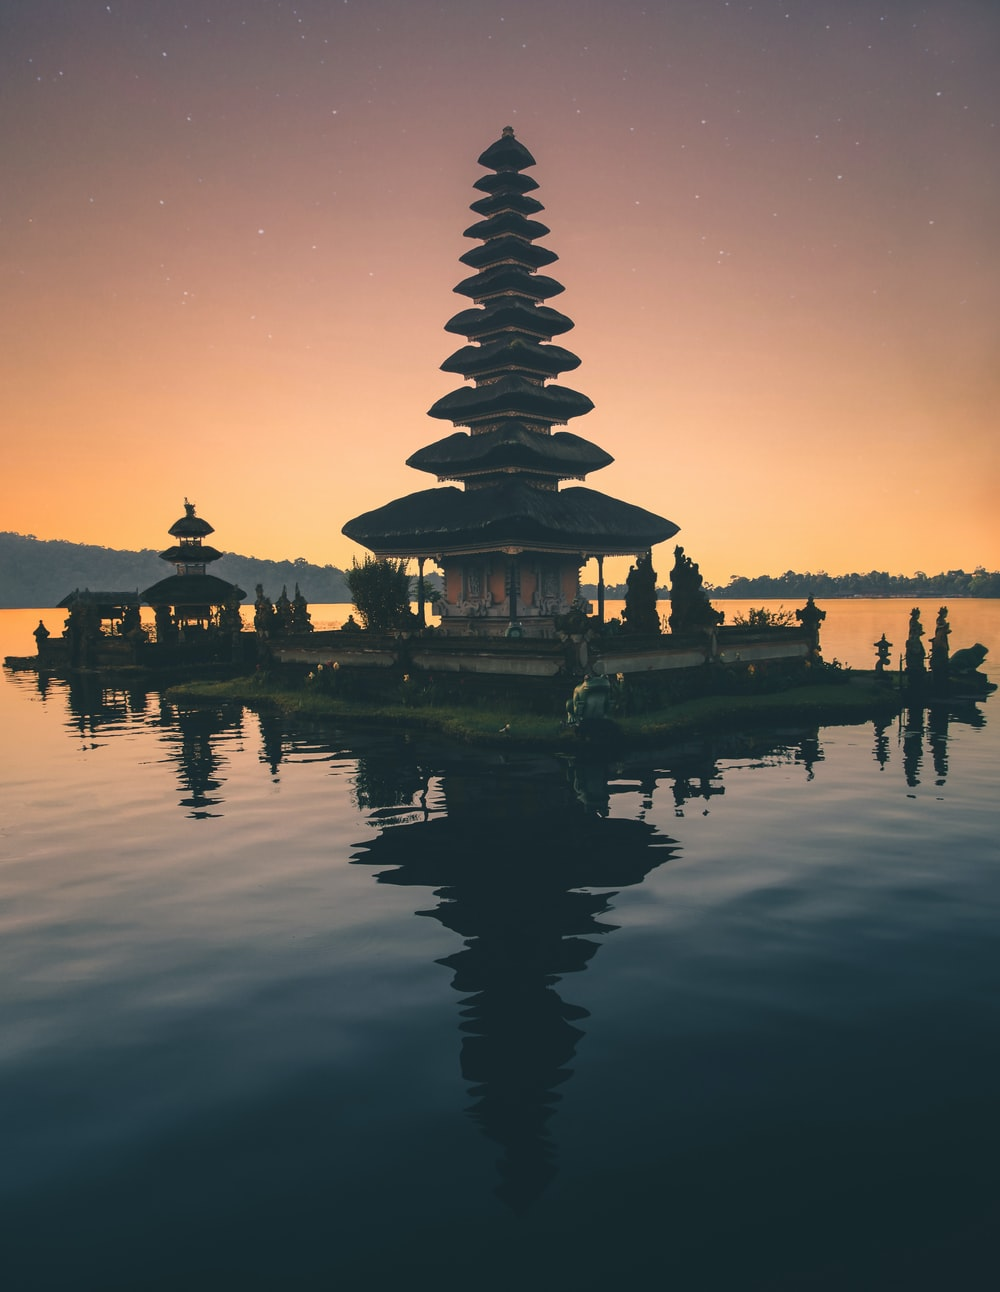 temple in between body of water